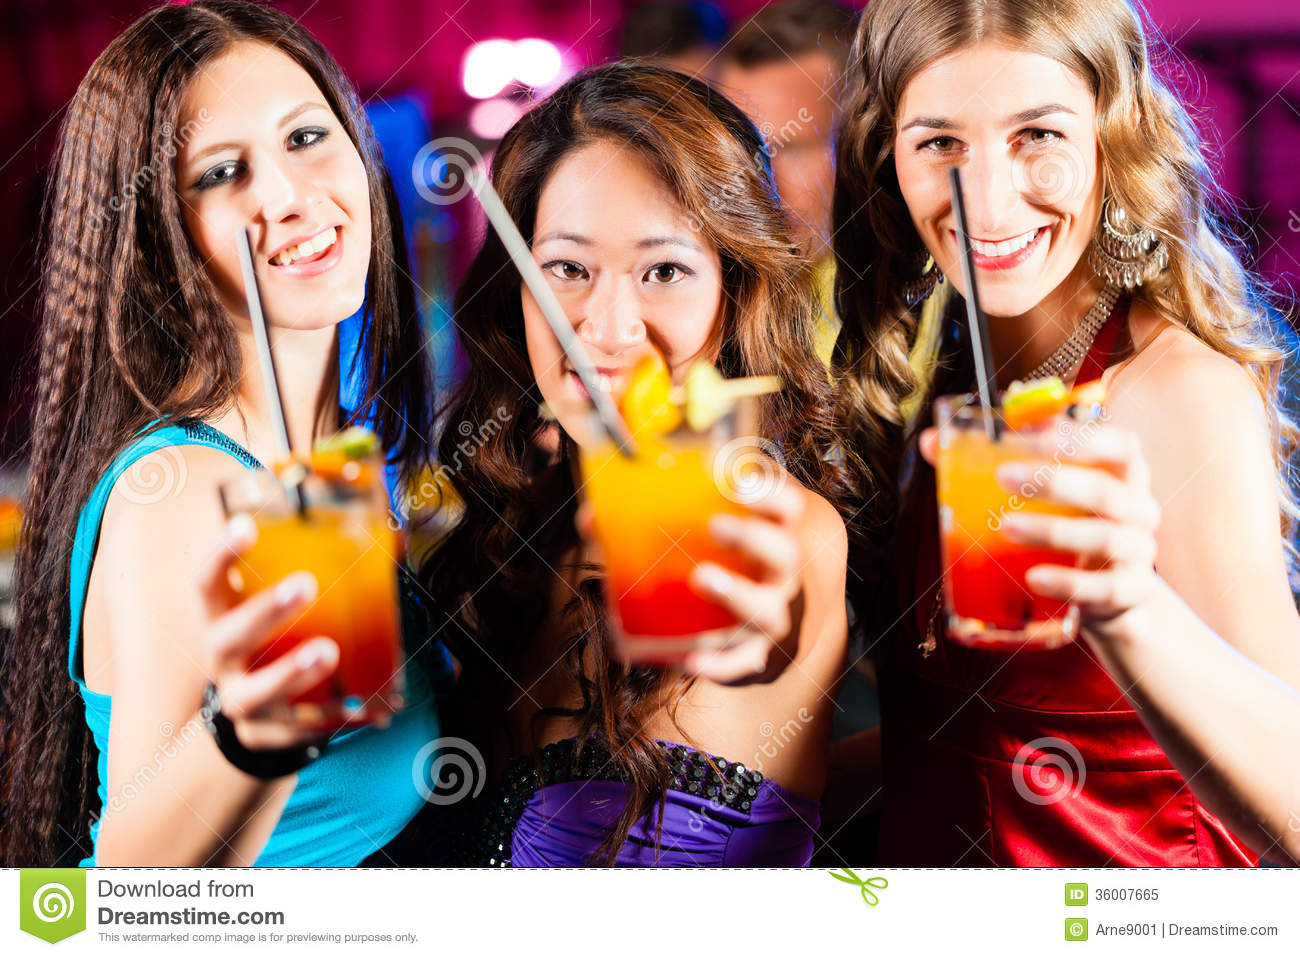 Group Of People Having Fun In Busy Bar Stock Image - Image ...  |People Having Fun In A Club